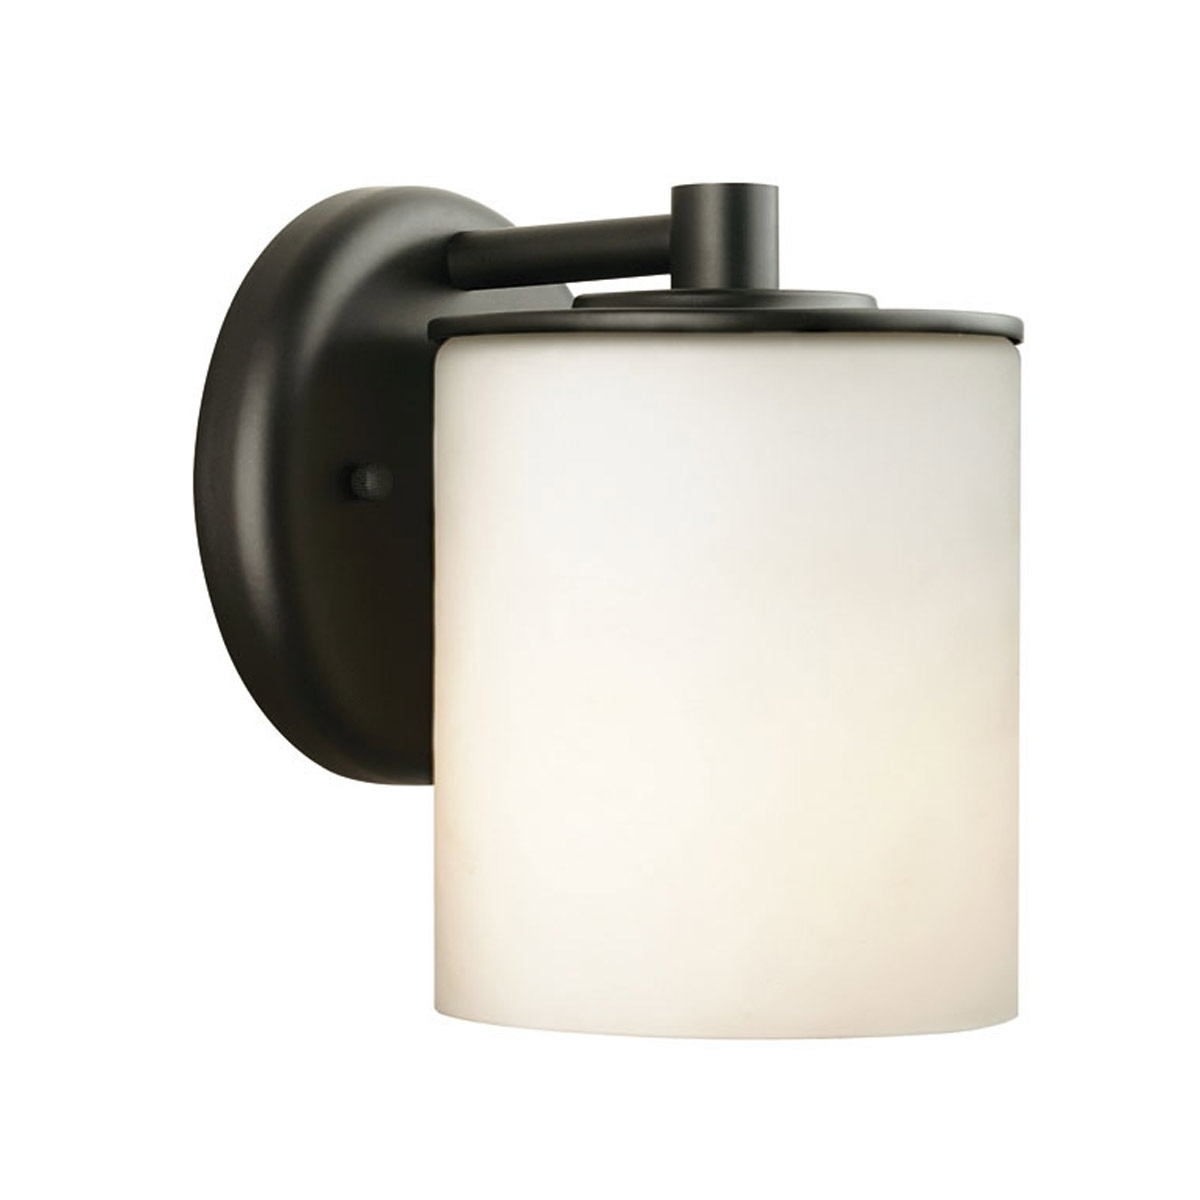 15 Best Collection Of Round Outdoor Wall Lights